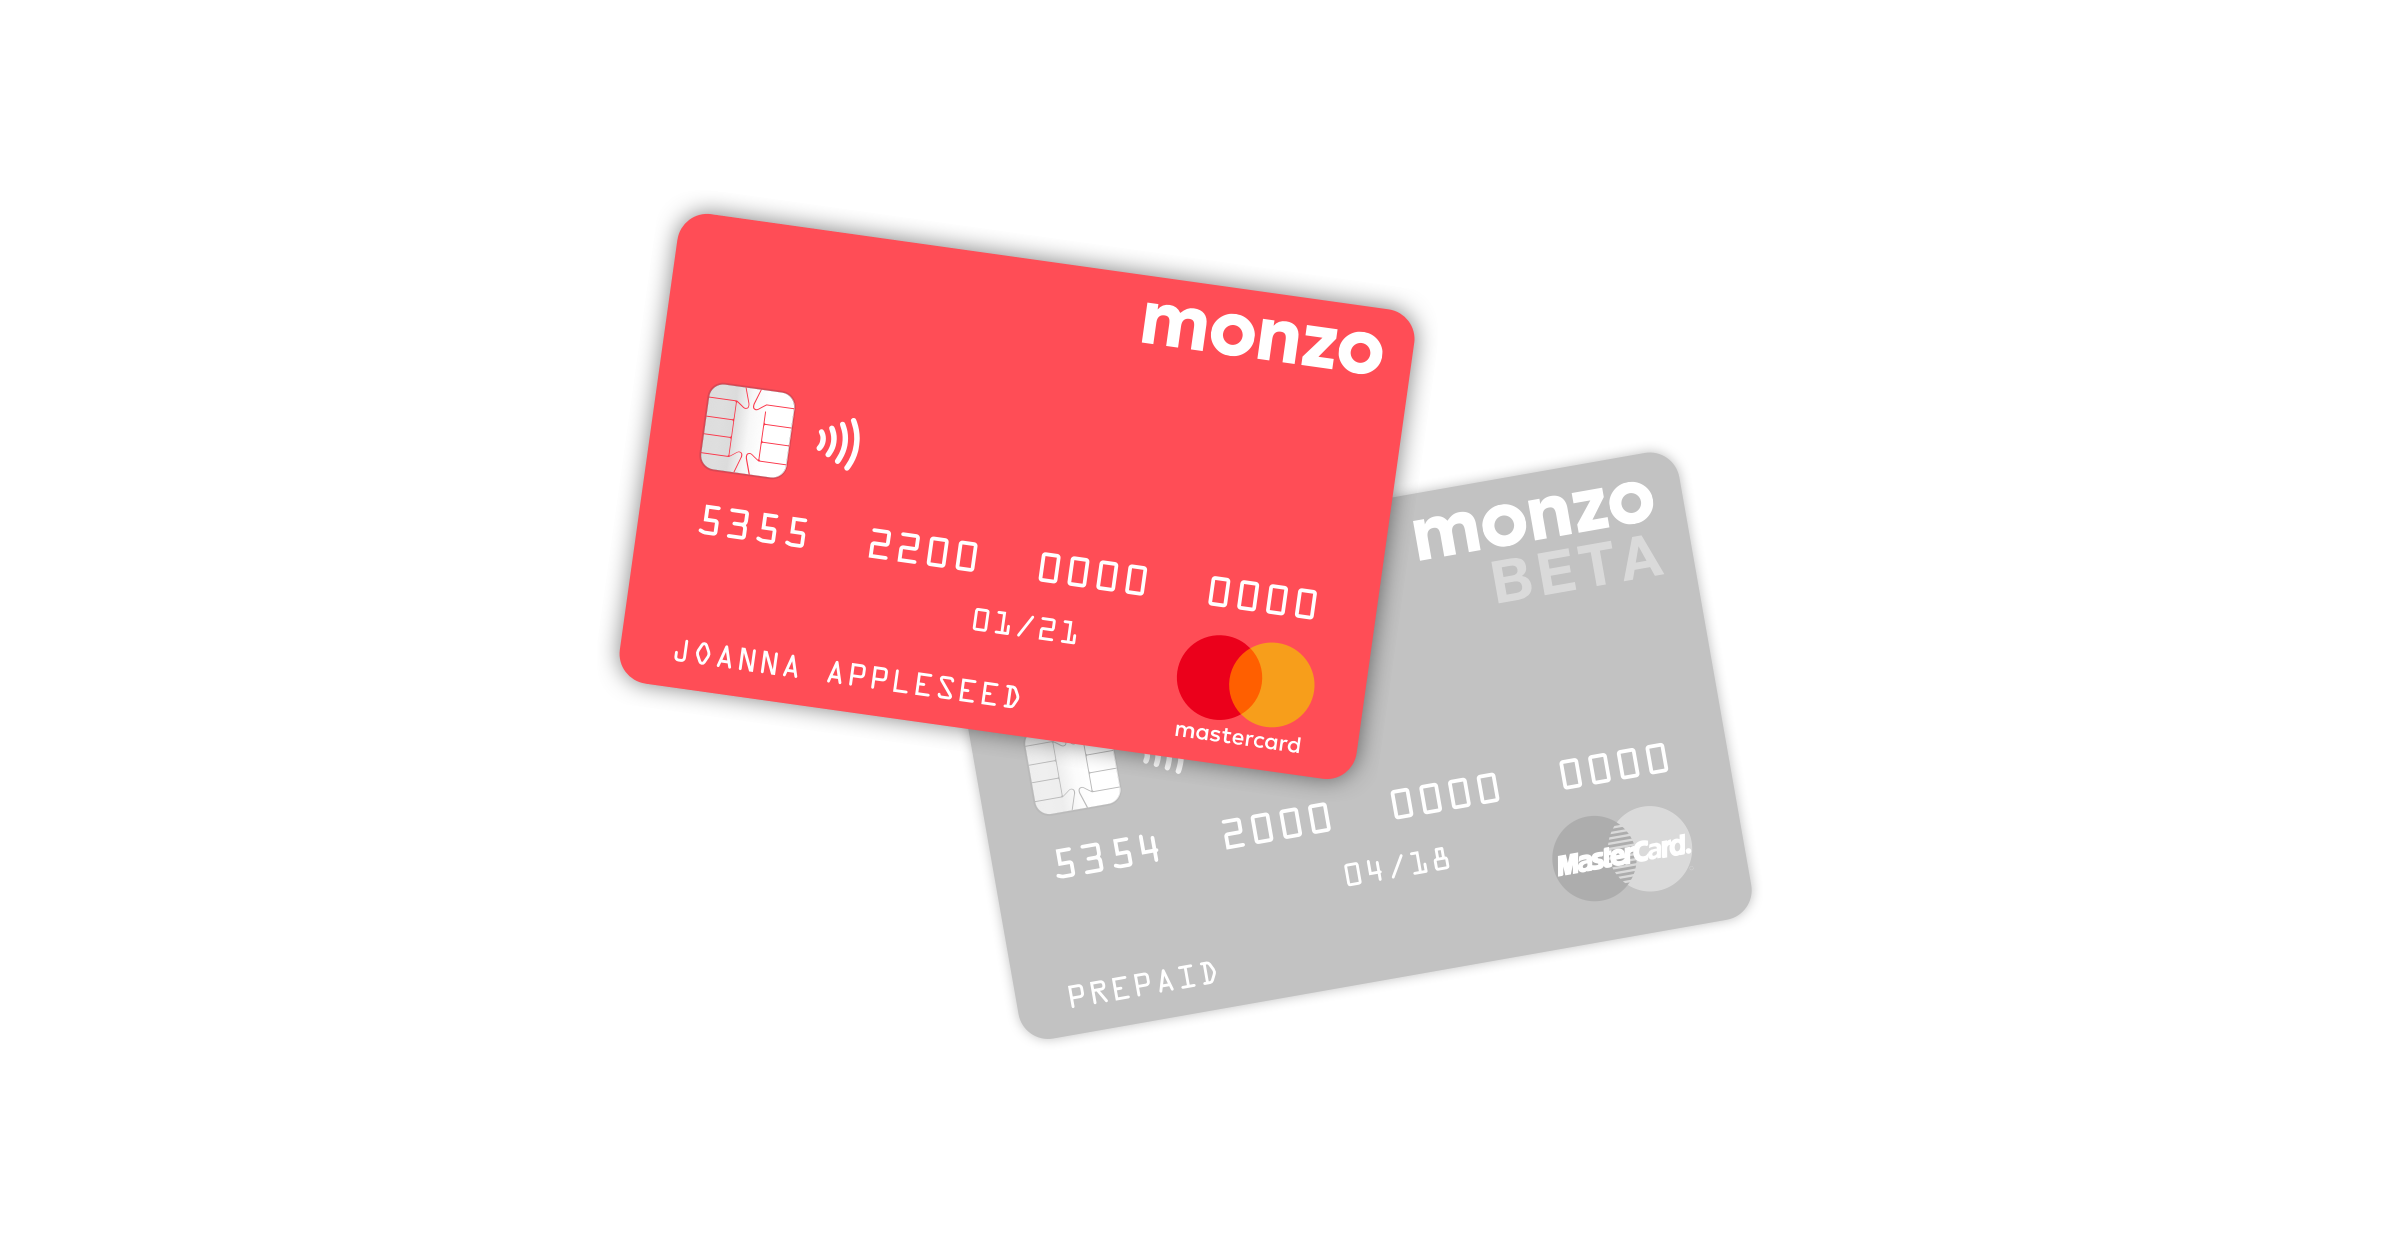 Our Plan to Close the Monzo Prepaid Cards